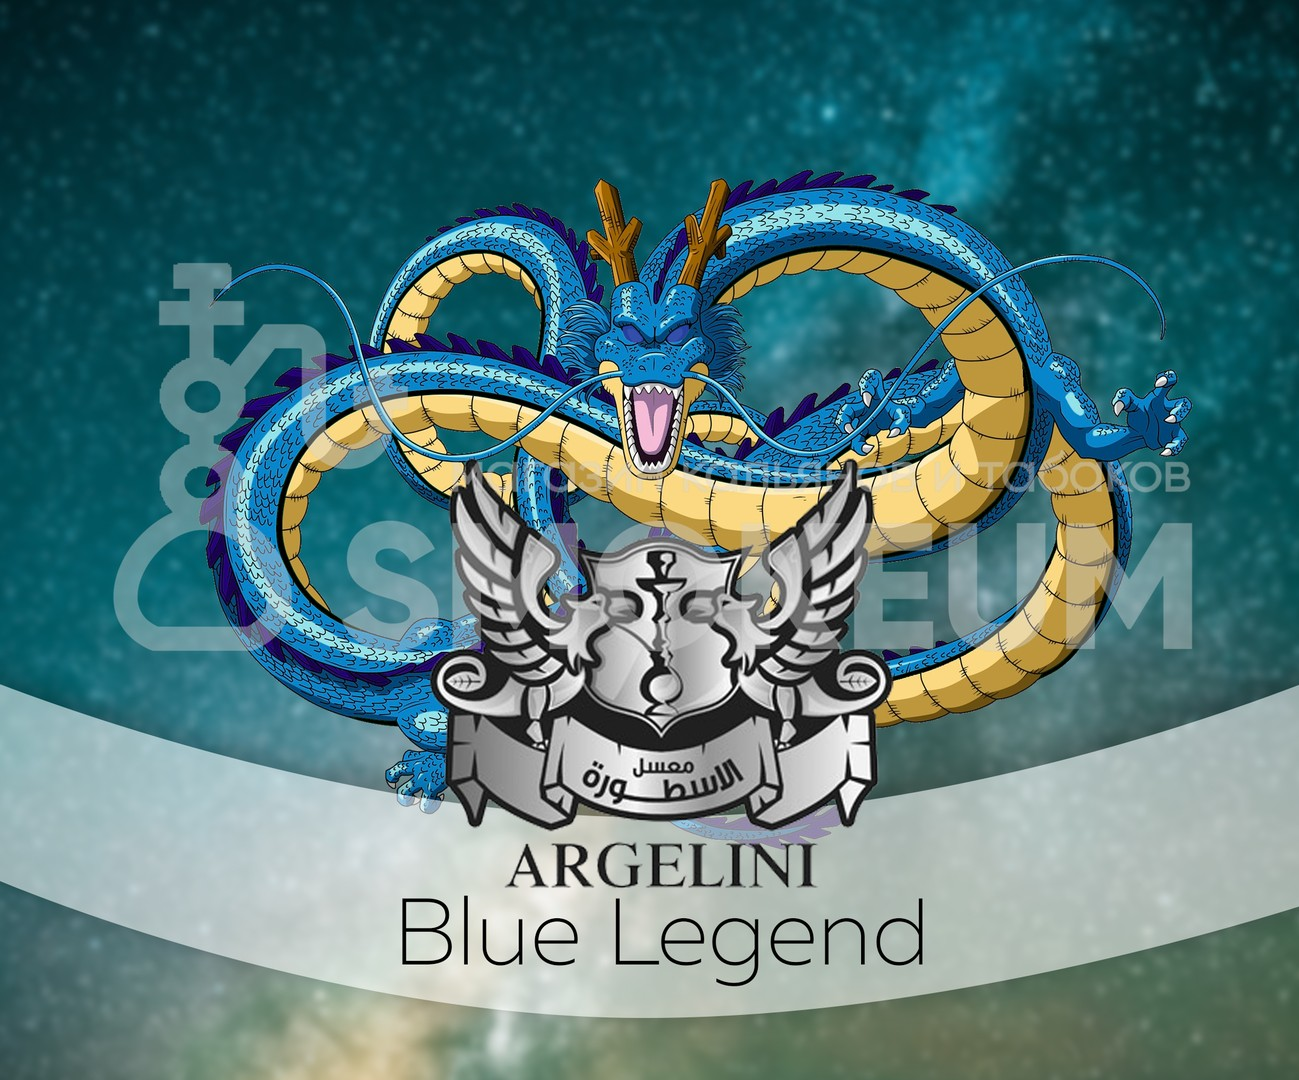 Табак Argelini - Blue Legend (Синяя Легенда) 50 гр